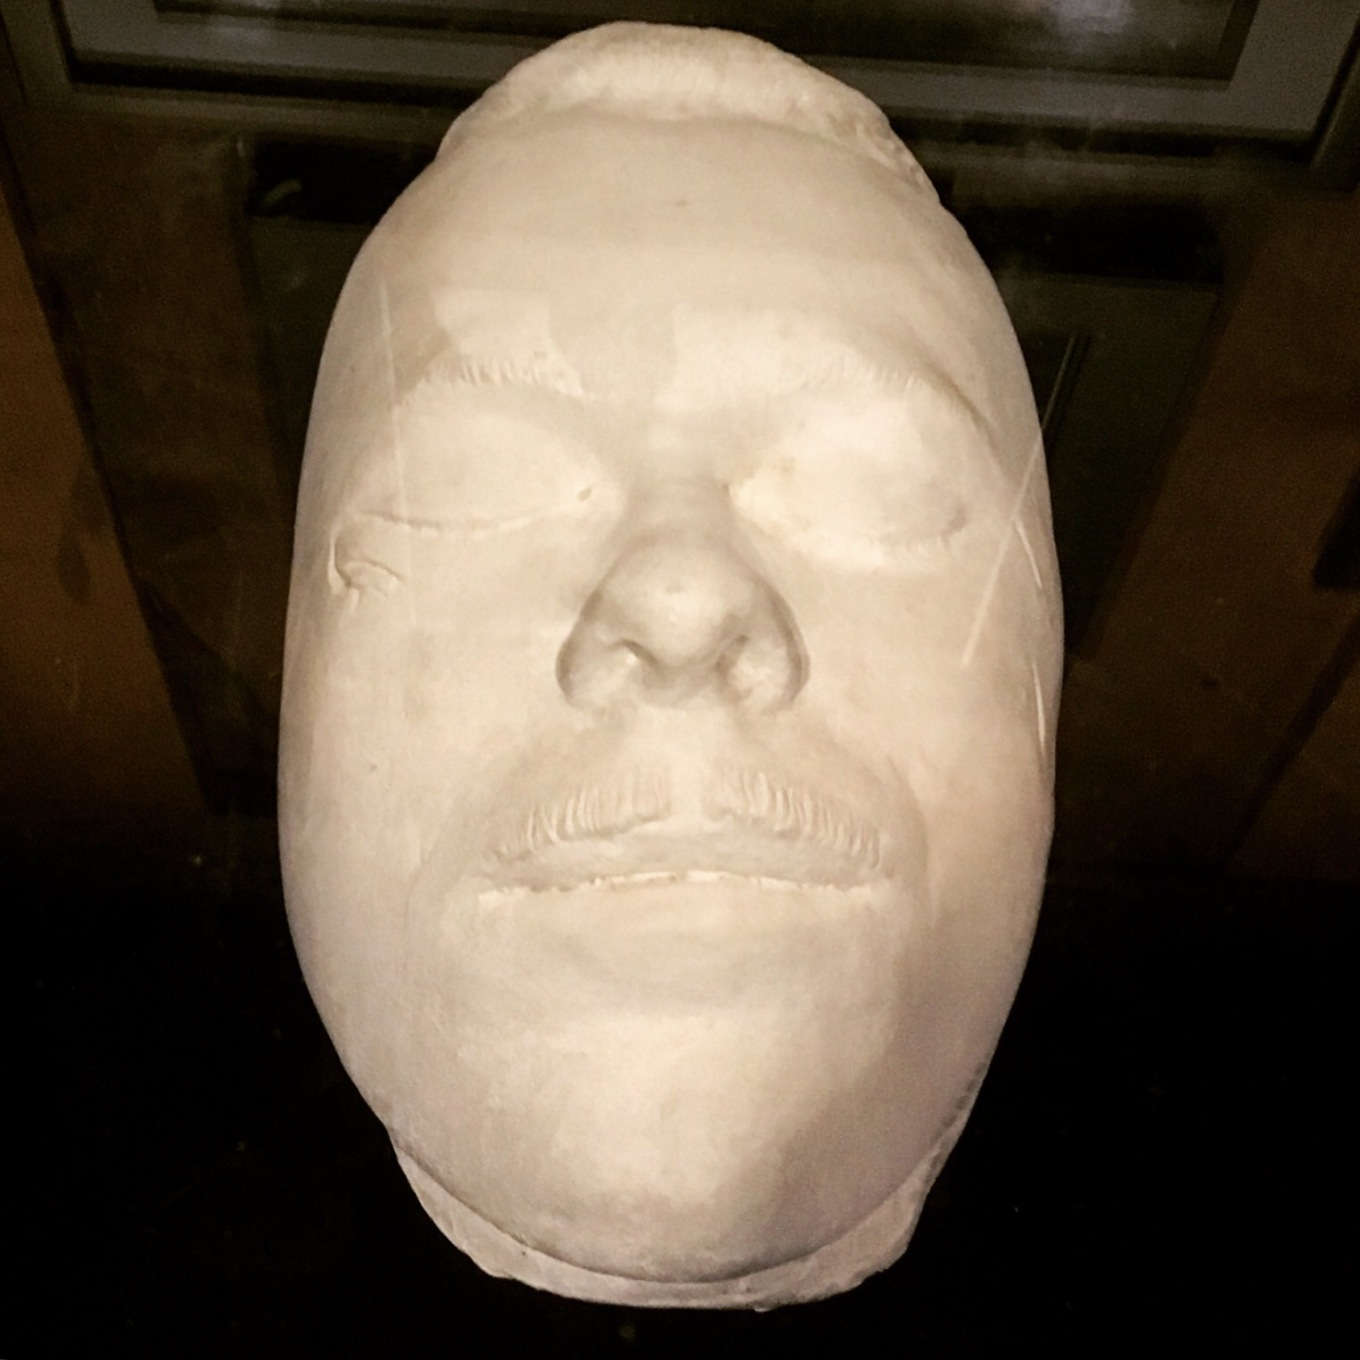 John Dillinger death mask at the Gangster Museum in Hot Springs Arkansas